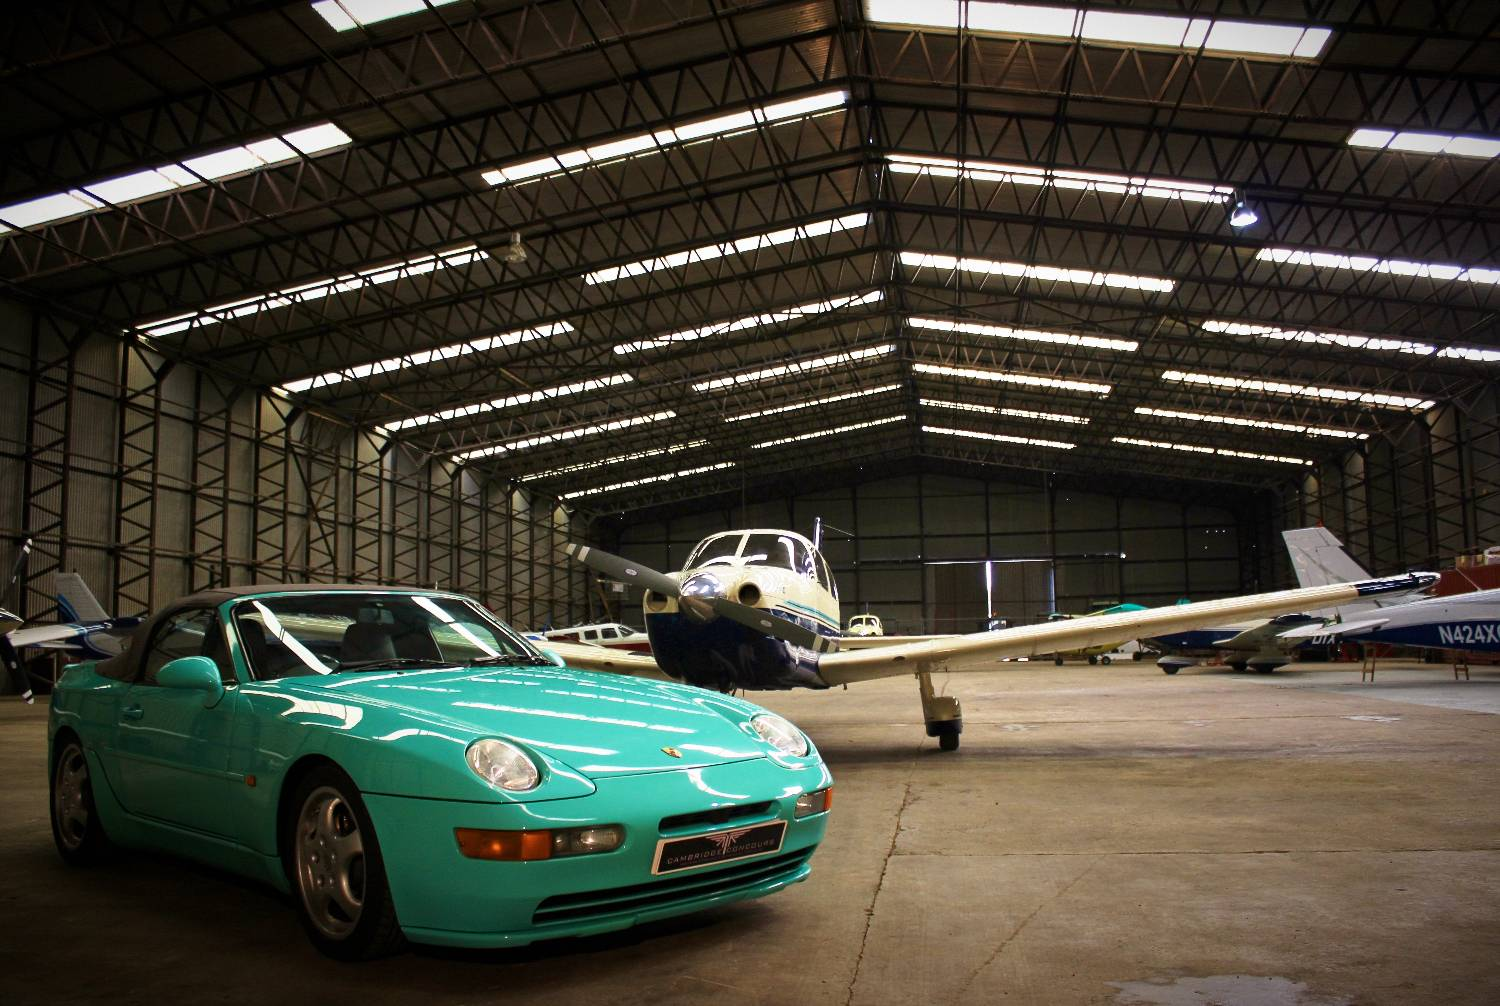 Concours Jet & Plane Cleaning